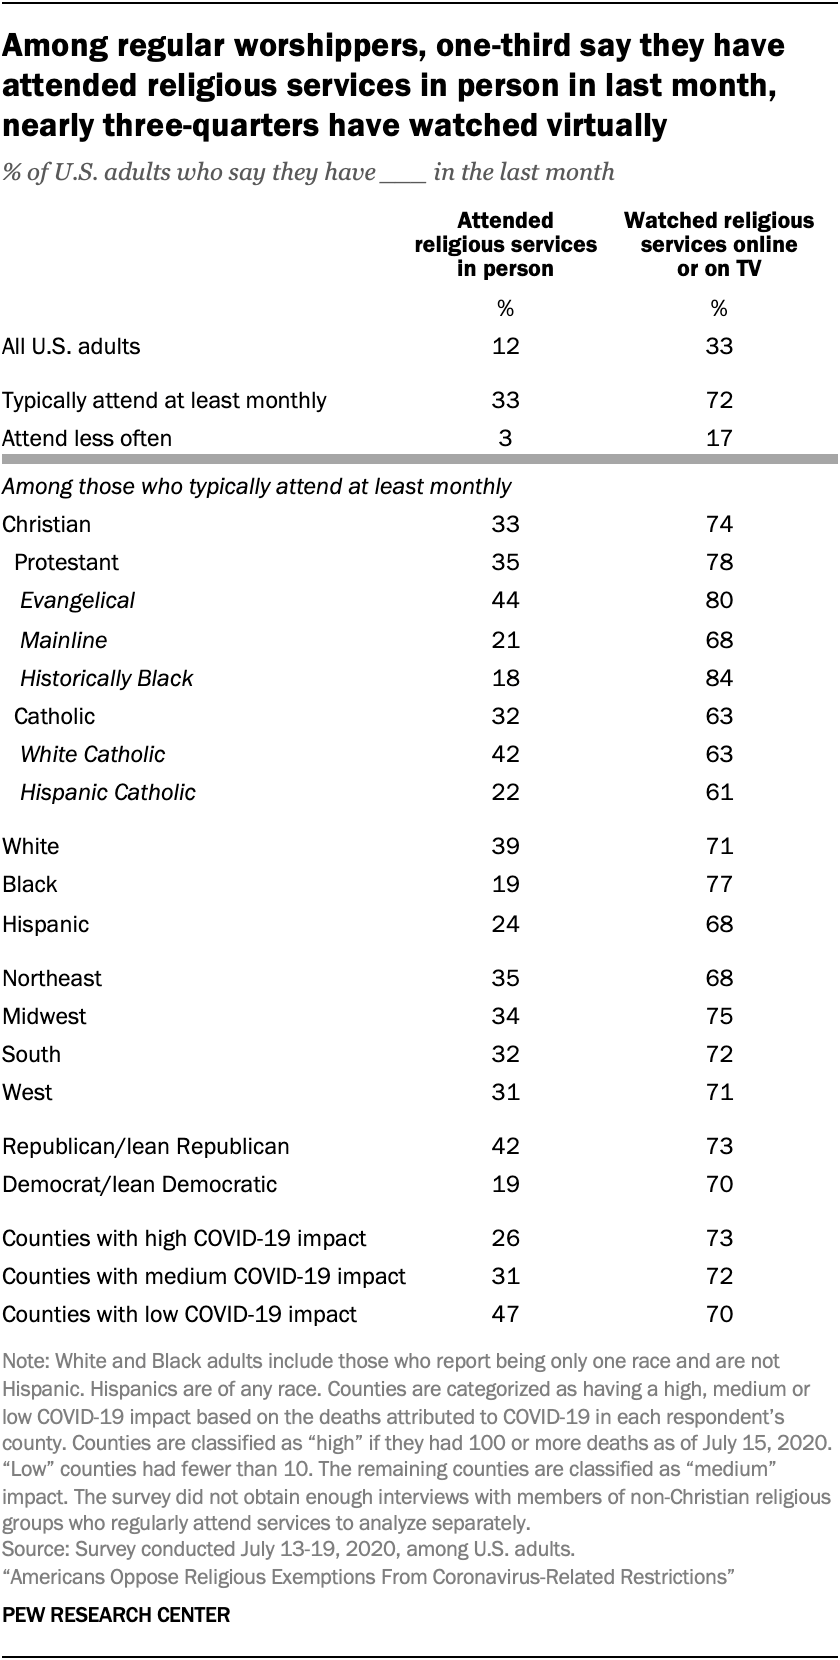 Among regular worshippers, one-third say they have attended religious services in person in last month, nearly three-quarters have watched virtually